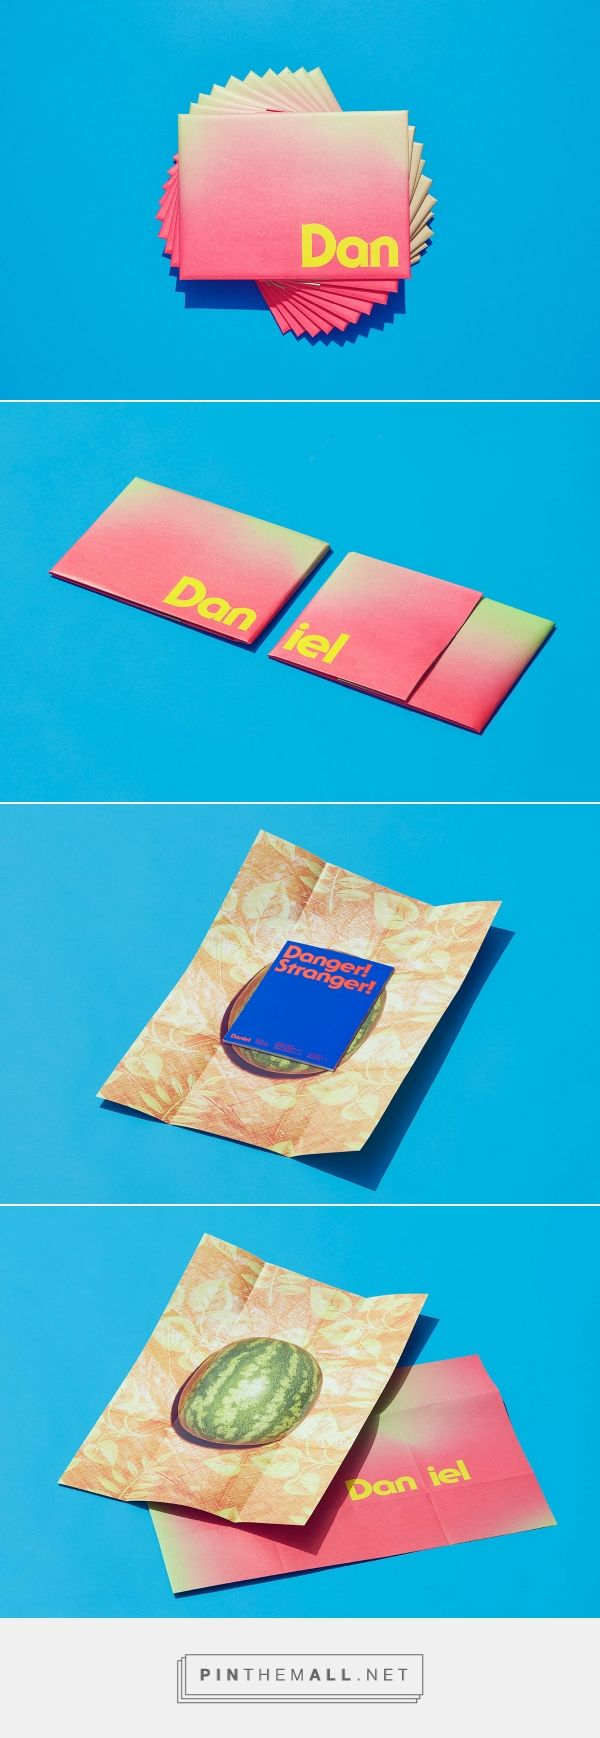 Daniel Ehrenworth on Behance... - a grouped images picture - Pin Them All